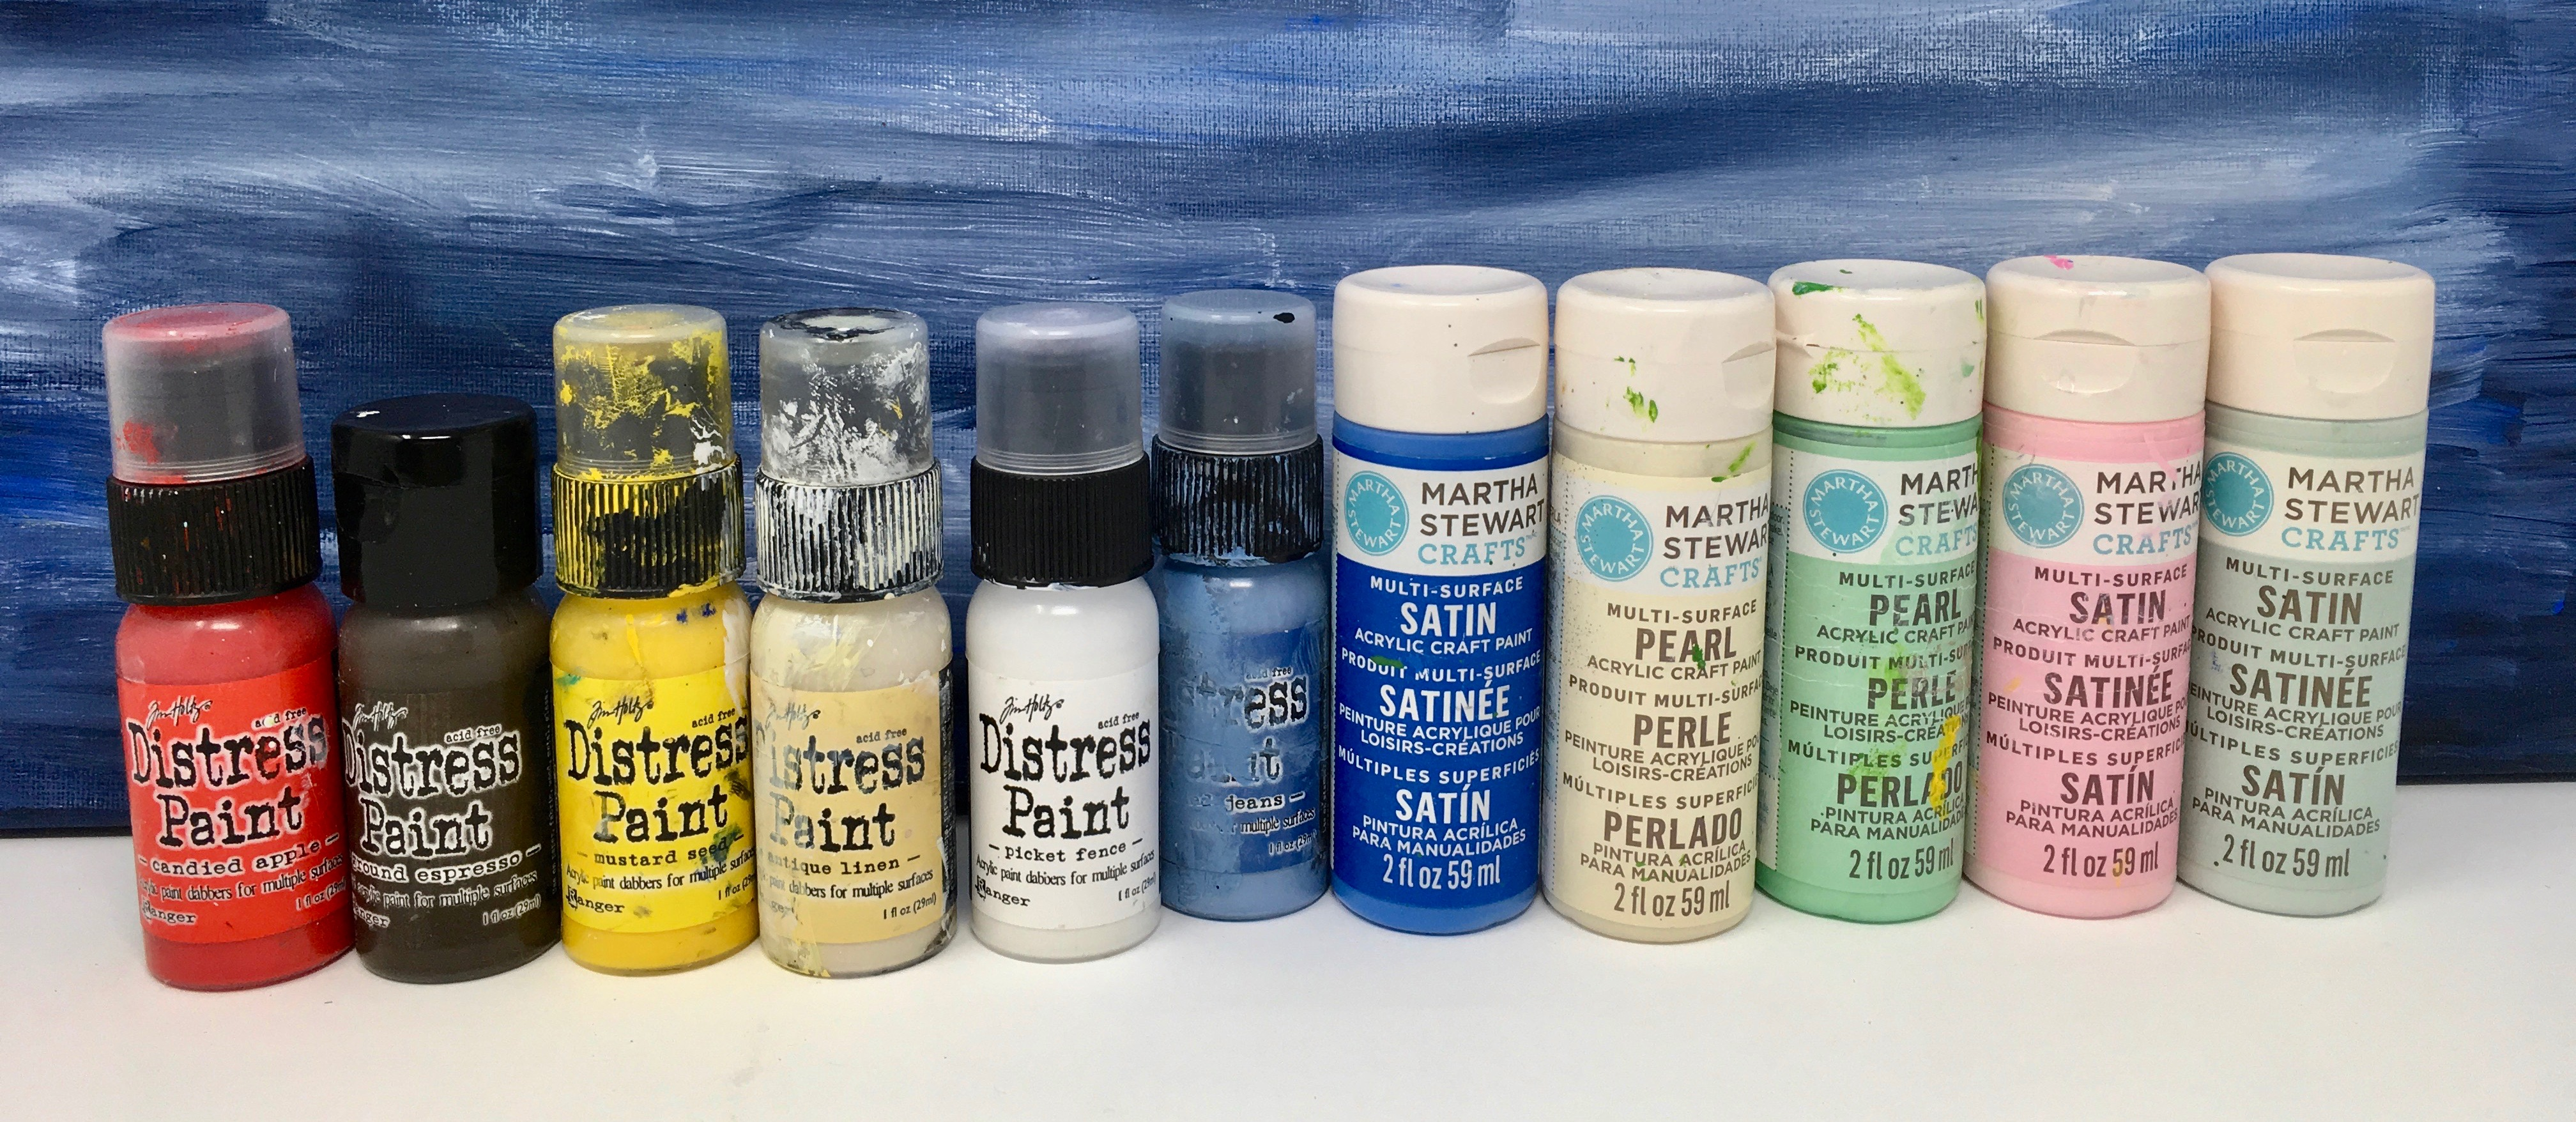 Ranger Distress paints and Martha Stewart paints for painting your glitter or putz house #putzhouse